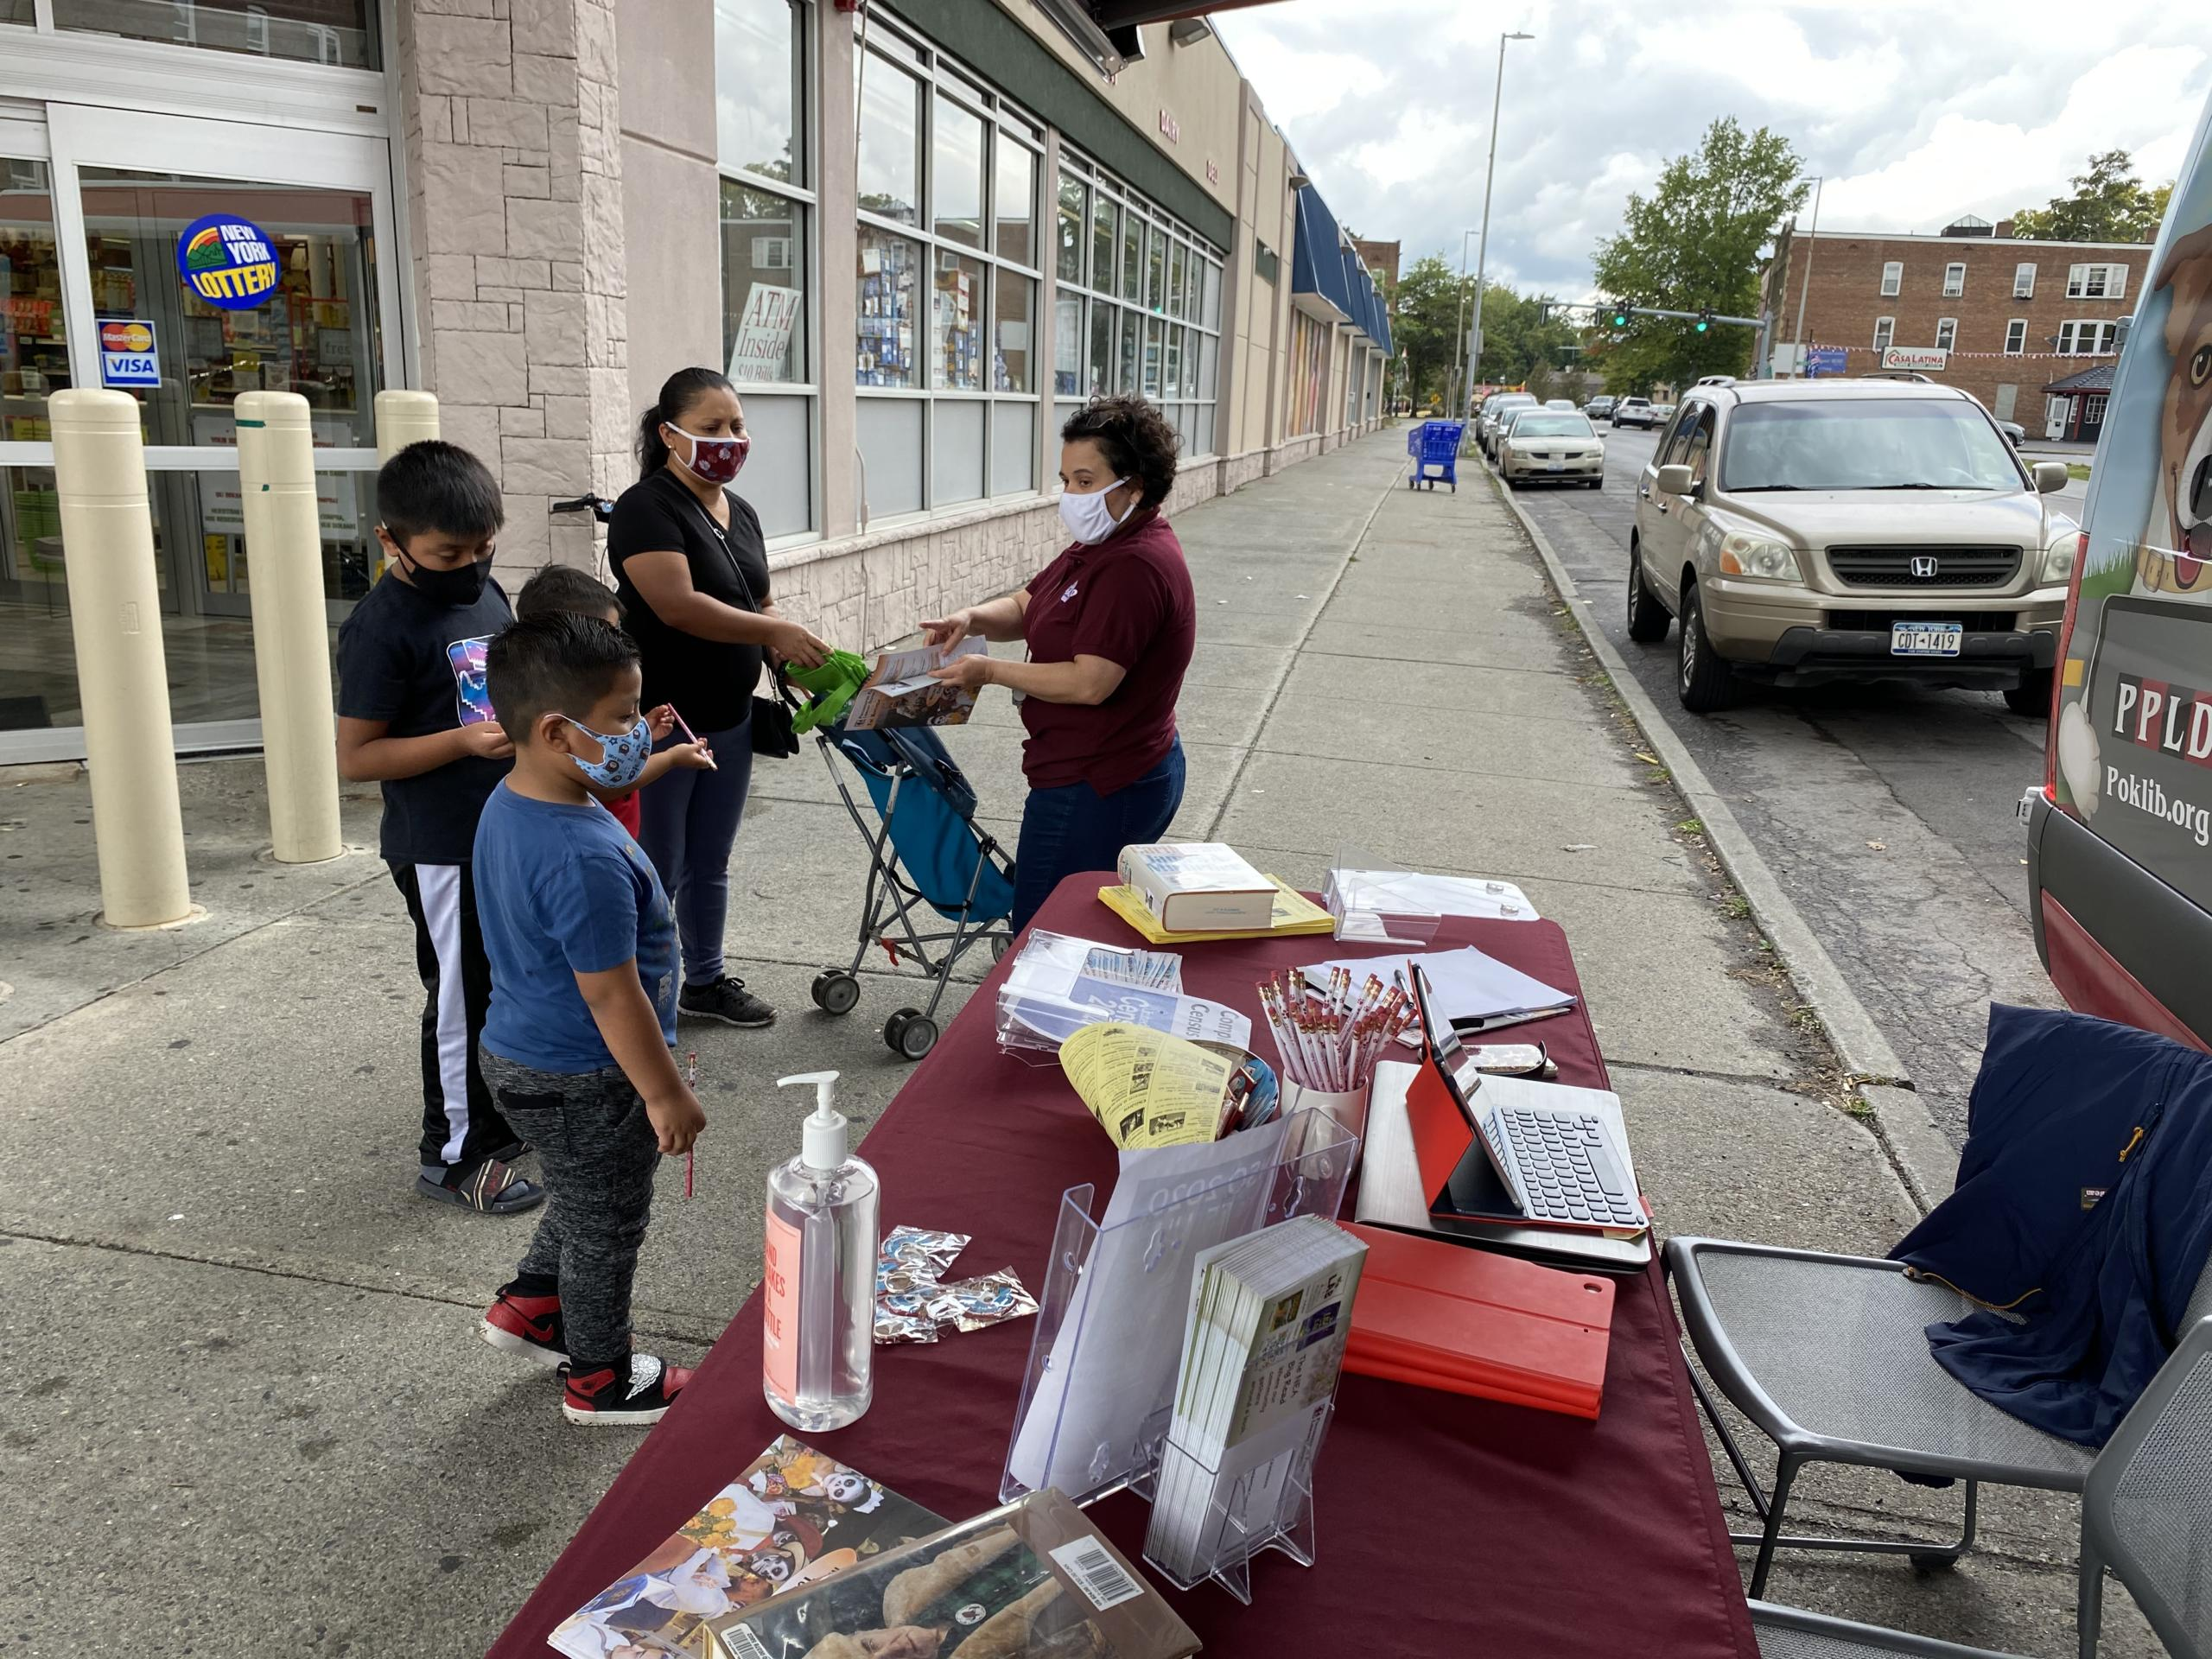 Photo #4 of Rover bookmobile at Fresh Market.